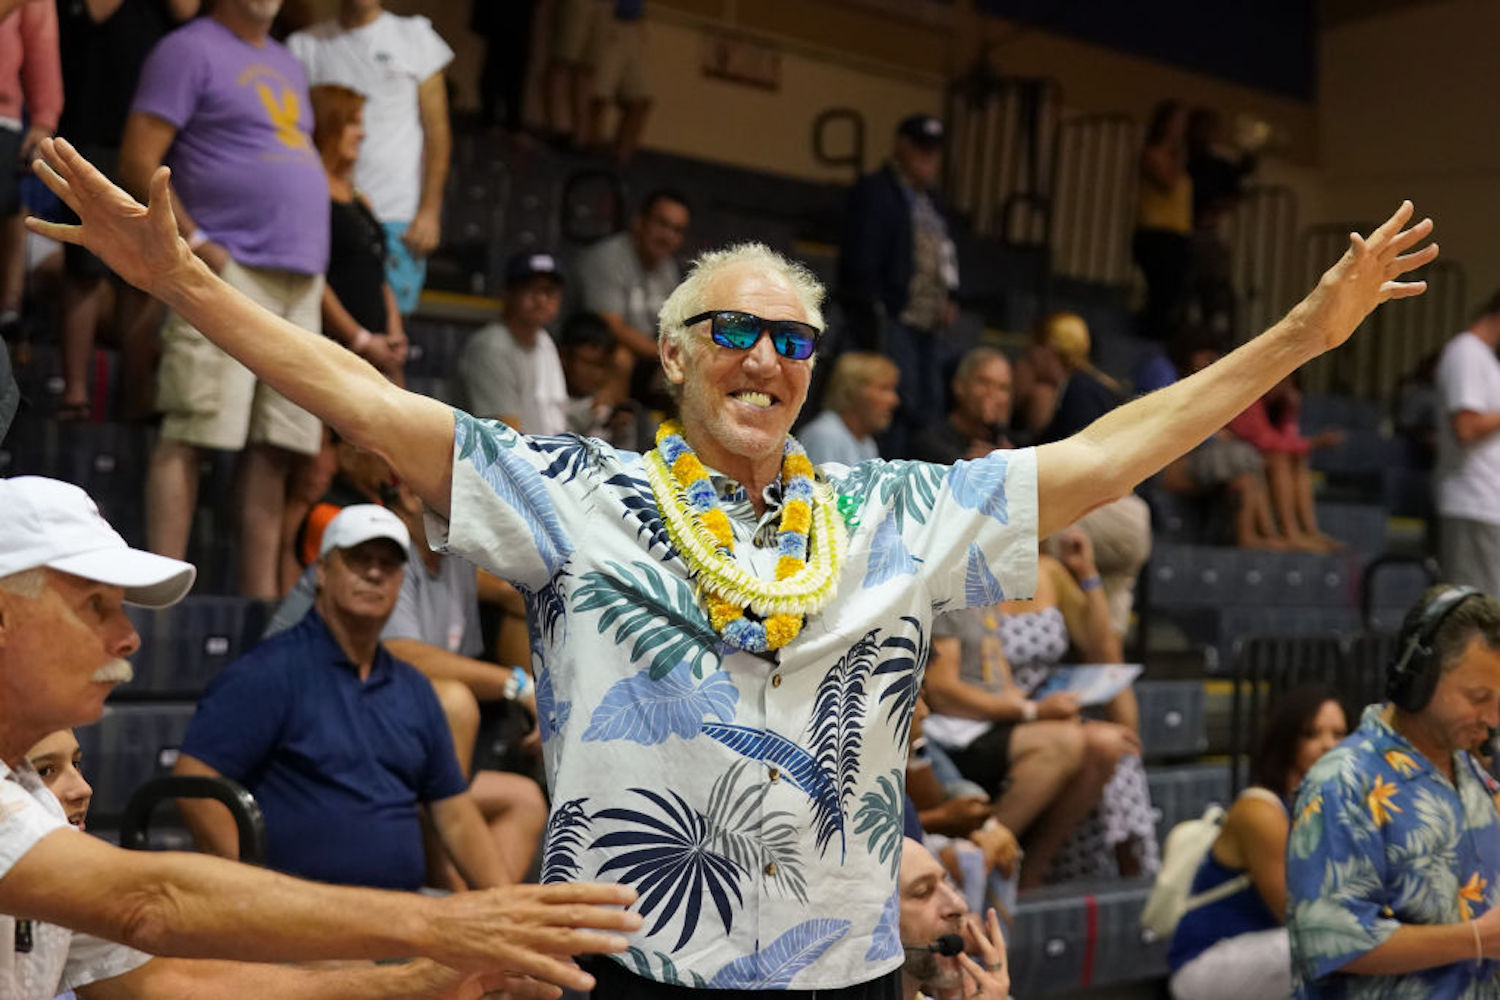 Bill Walton has told some outrageous stories since becoming a broadcaster. The craziest one involved a pterodactyl ride over the West Coast.